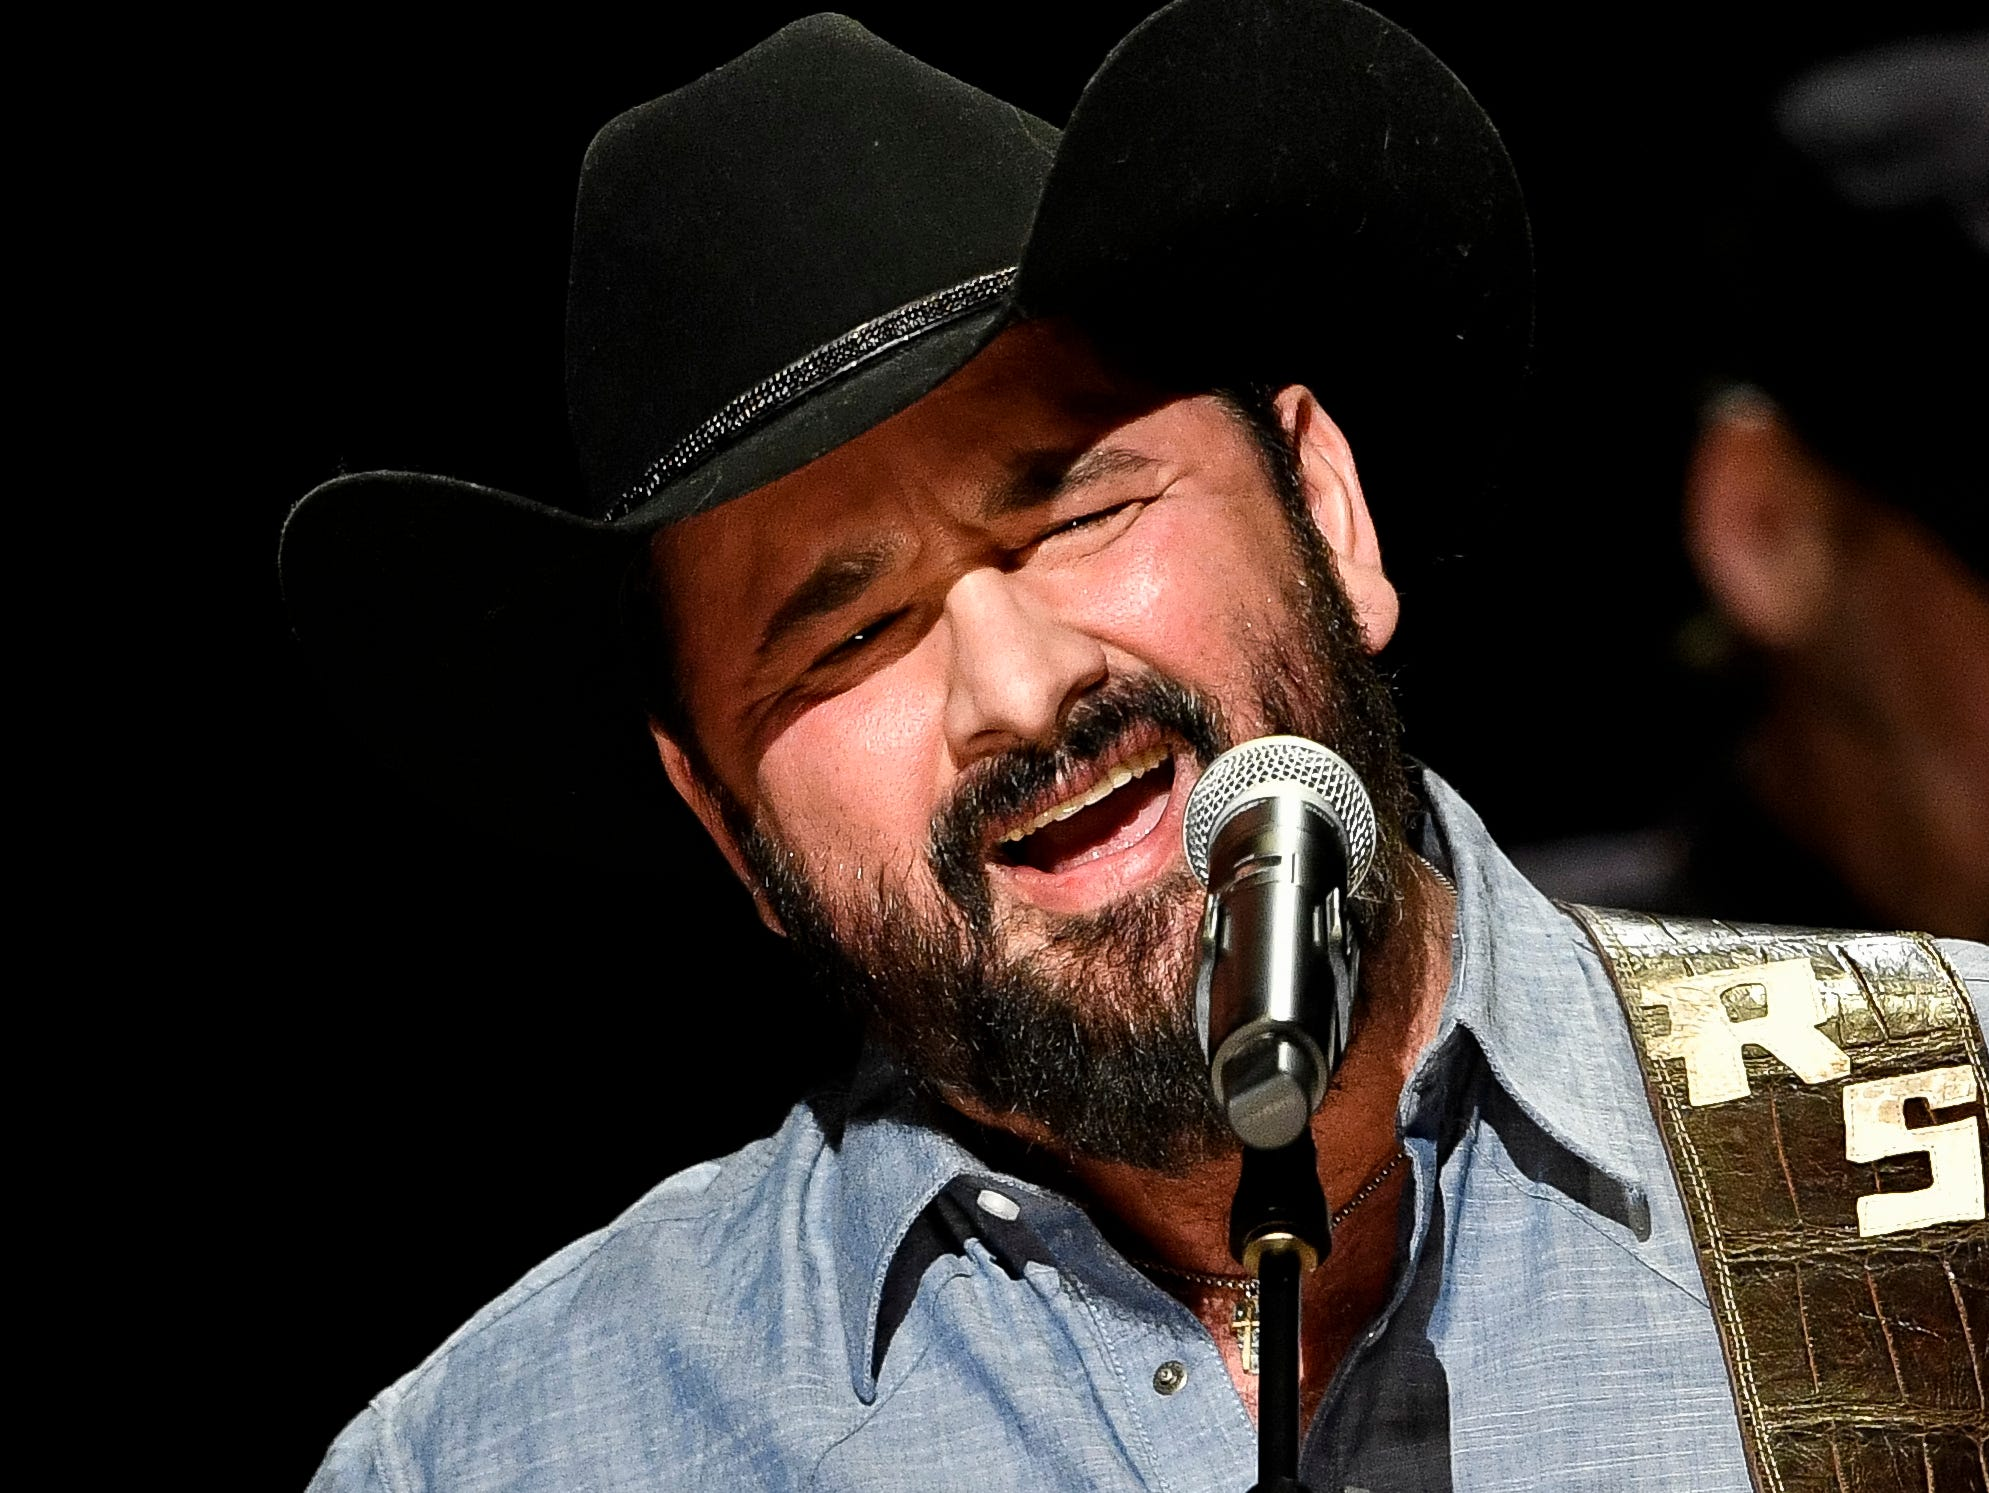 Ray Scott performs during the C'Ya On The Flipside Benefit Concert at the Grand Ole Opry House in Nashville, Tenn., Wednesday, Jan. 9, 2019.